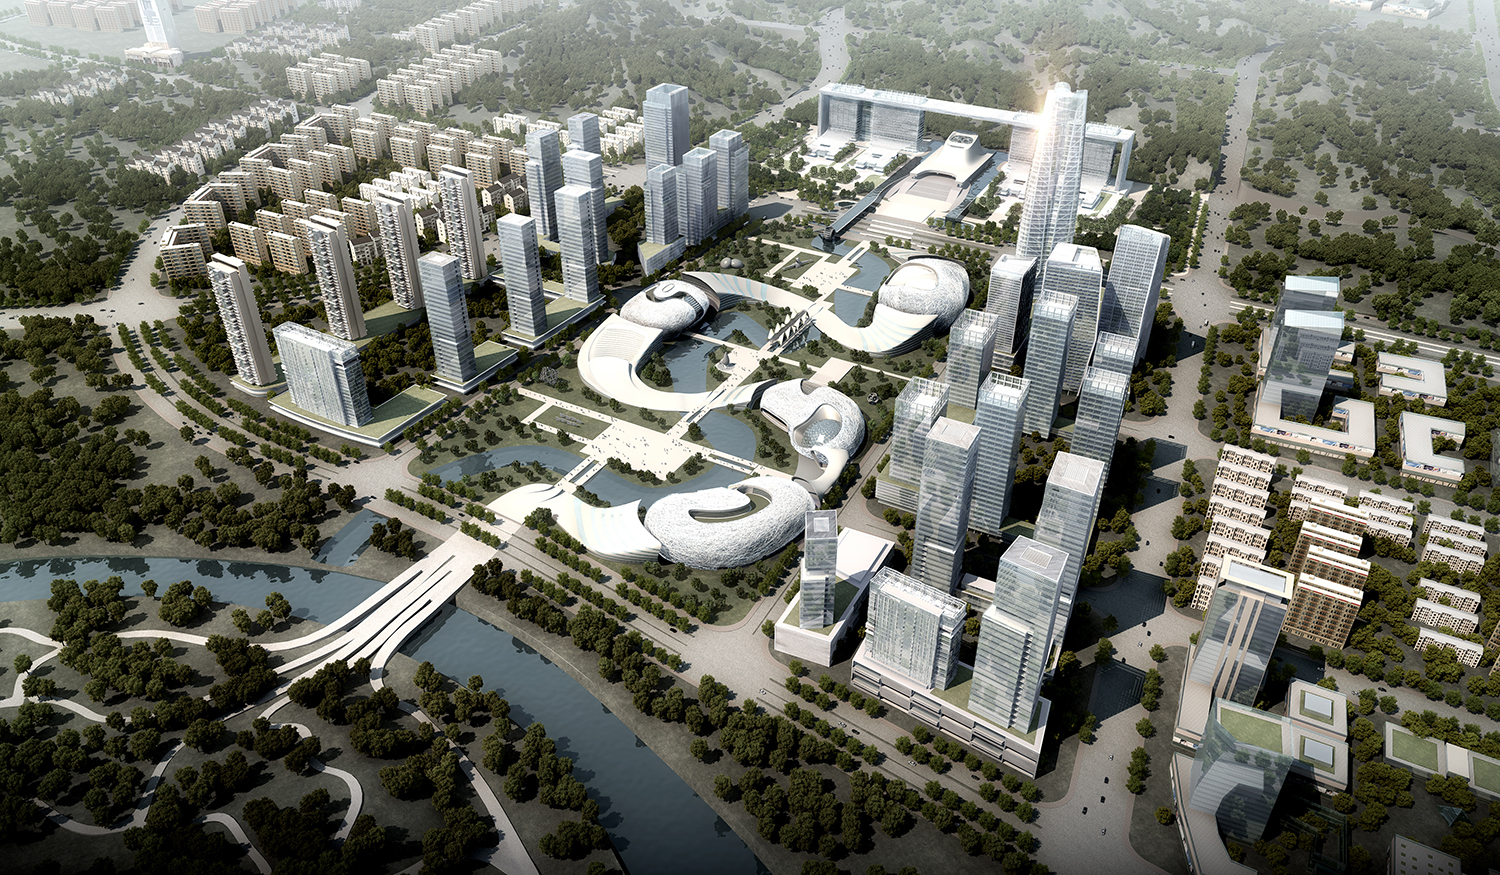 Yichang New District Master Plan Amphibianarc